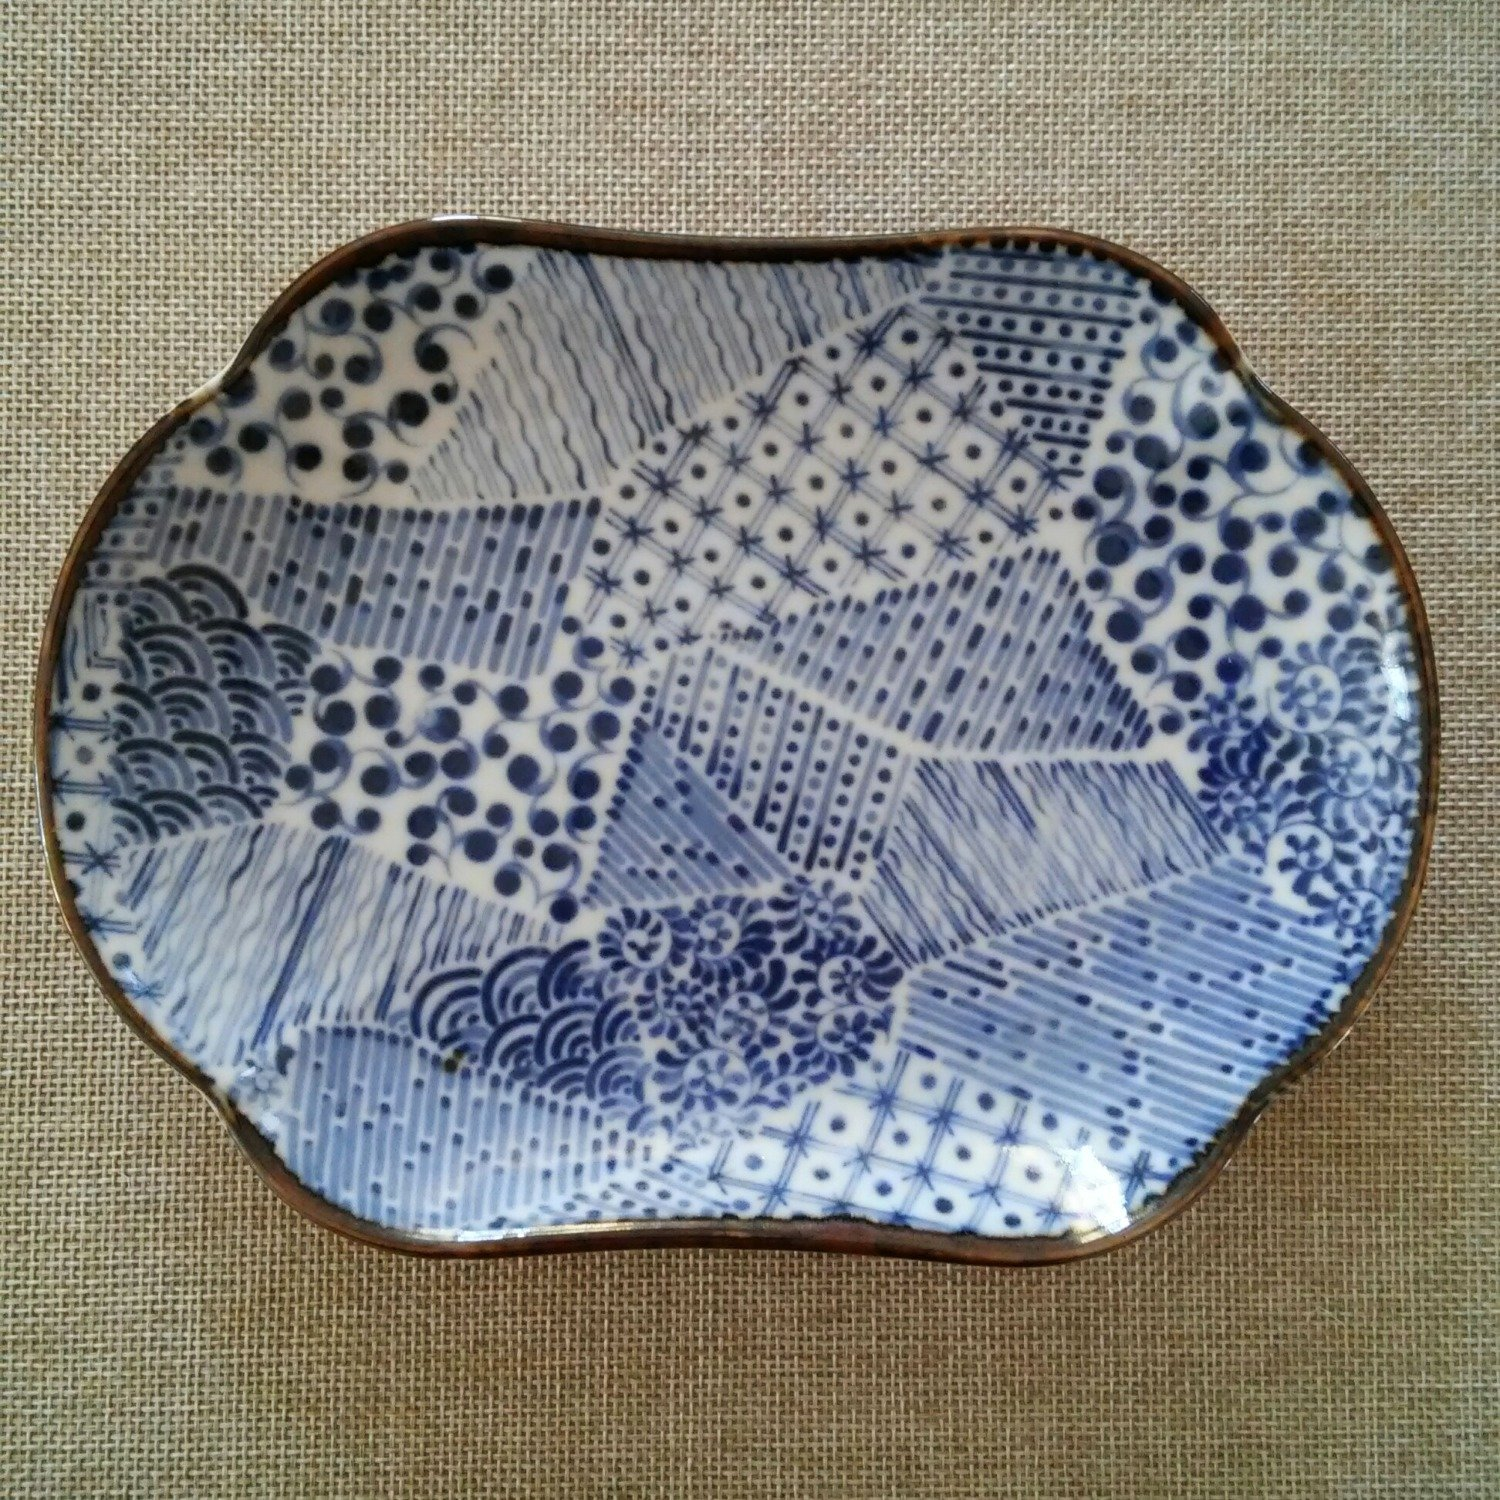 Vintage Takahashi Blue and White Arita Porcelain Trinket Dish